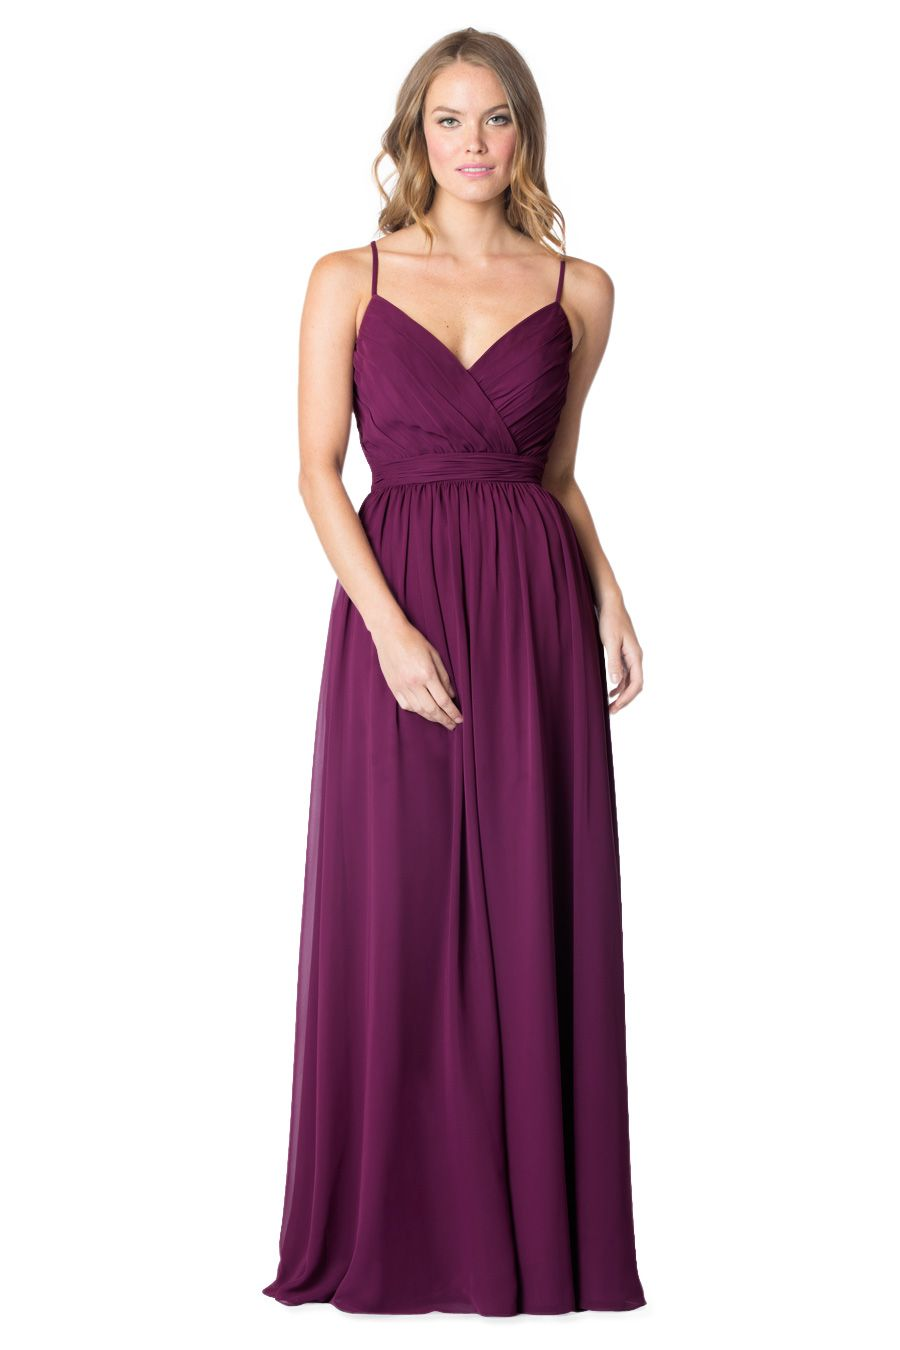 Bridesmaid Dresses Available at Ella Park Bridal | Newburgh, IN ...